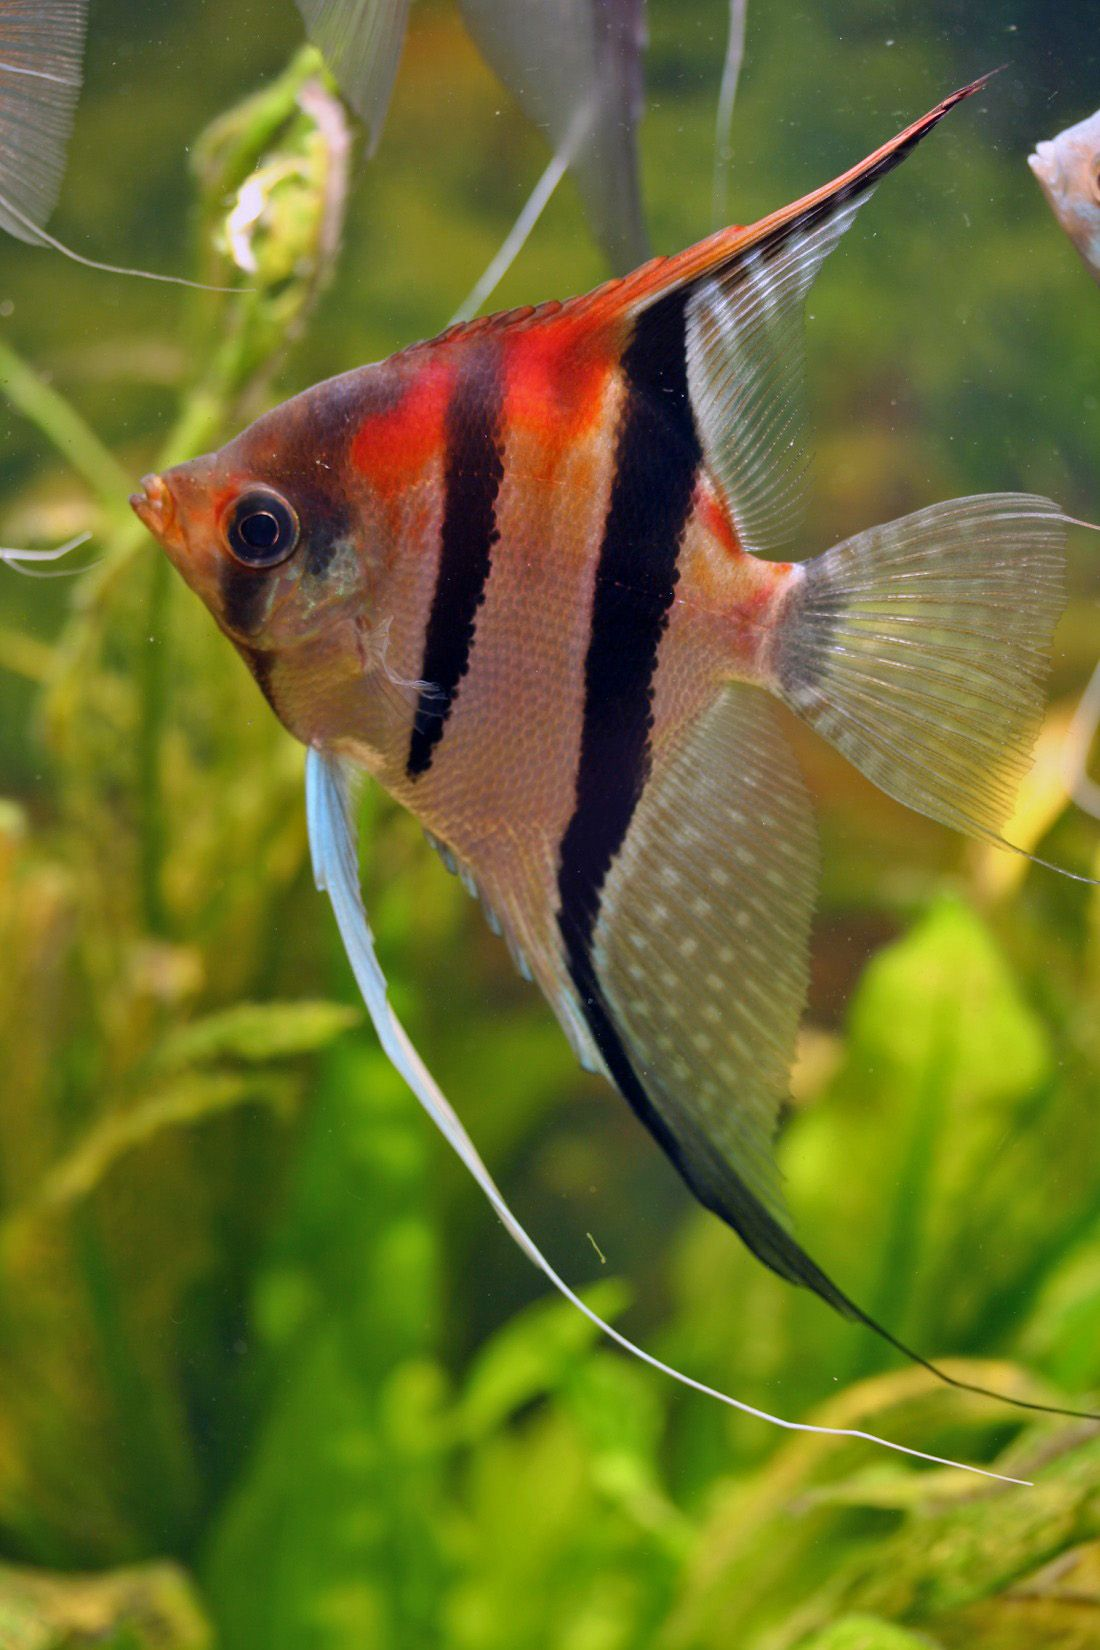 Freshwater aquarium fish angelfish - Red Shoulder Manacapuru Cichlid Aquariumfish Aquariumsaquarium Fishaquarium Ideasangelfishfreshwater